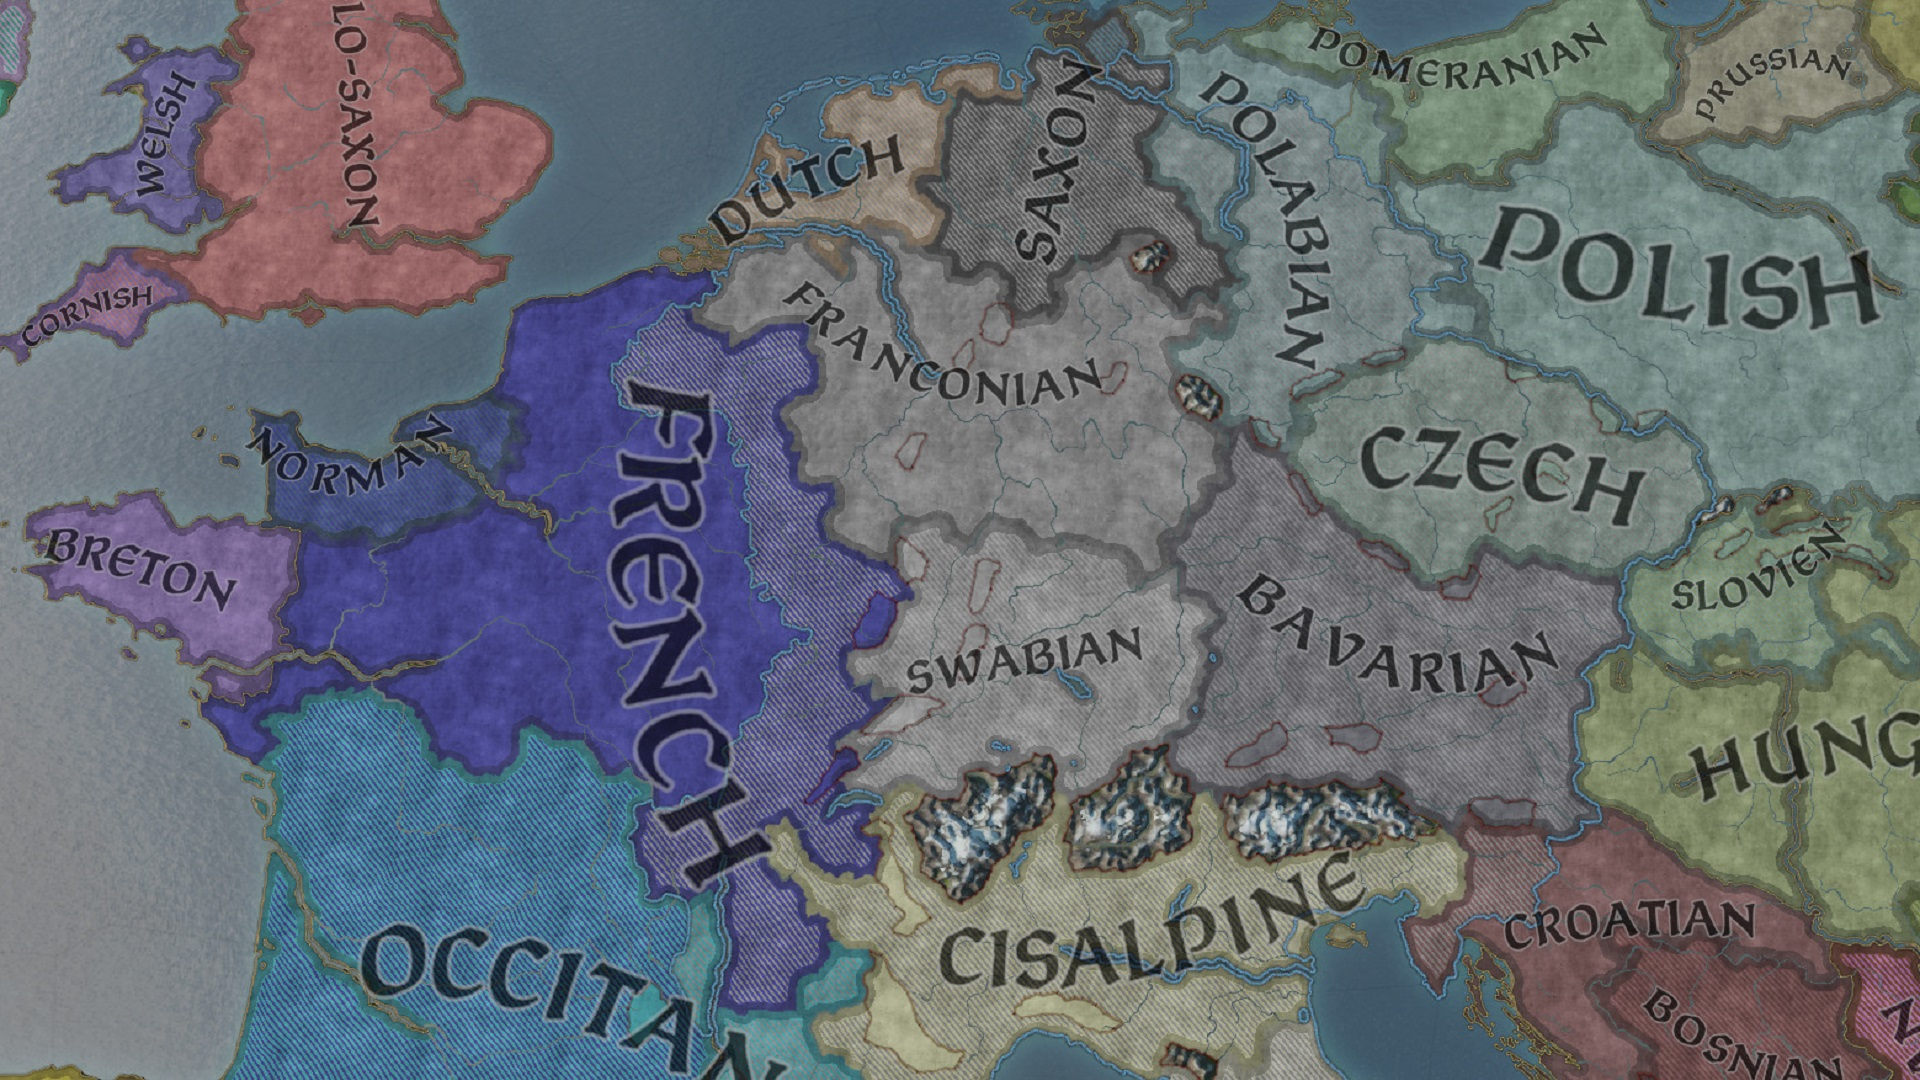 A Crusader Kings 3 speedrunner converts the world to one culture in just 44 years